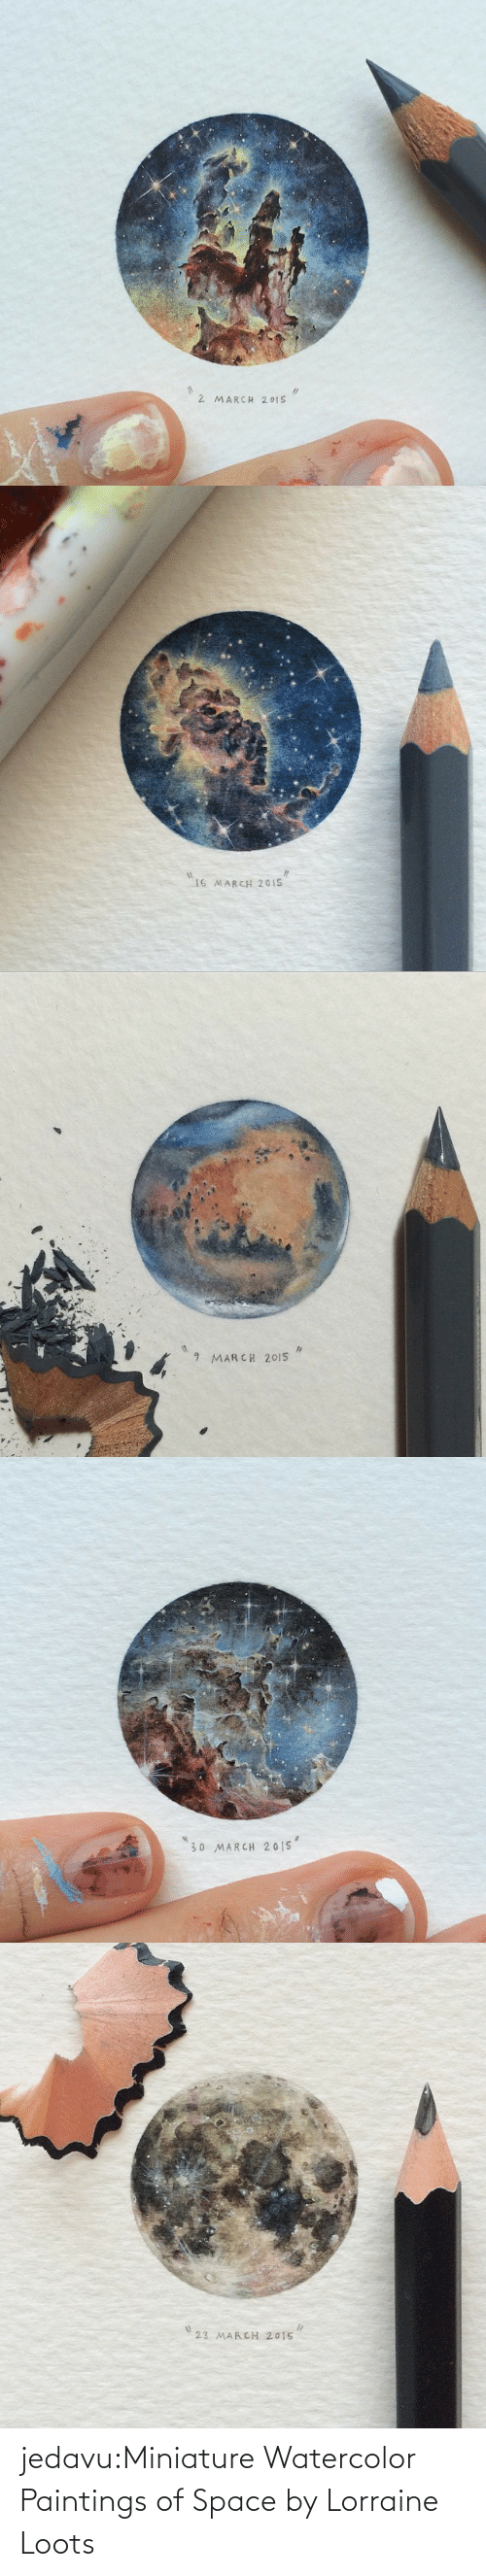 23 March: 2 MARCH 2015   16 MARCH 2015   9 MARCH 2015   30 MARCH 2015   23 MARCH 2015 jedavu:Miniature Watercolor Paintings of Space by Lorraine Loots